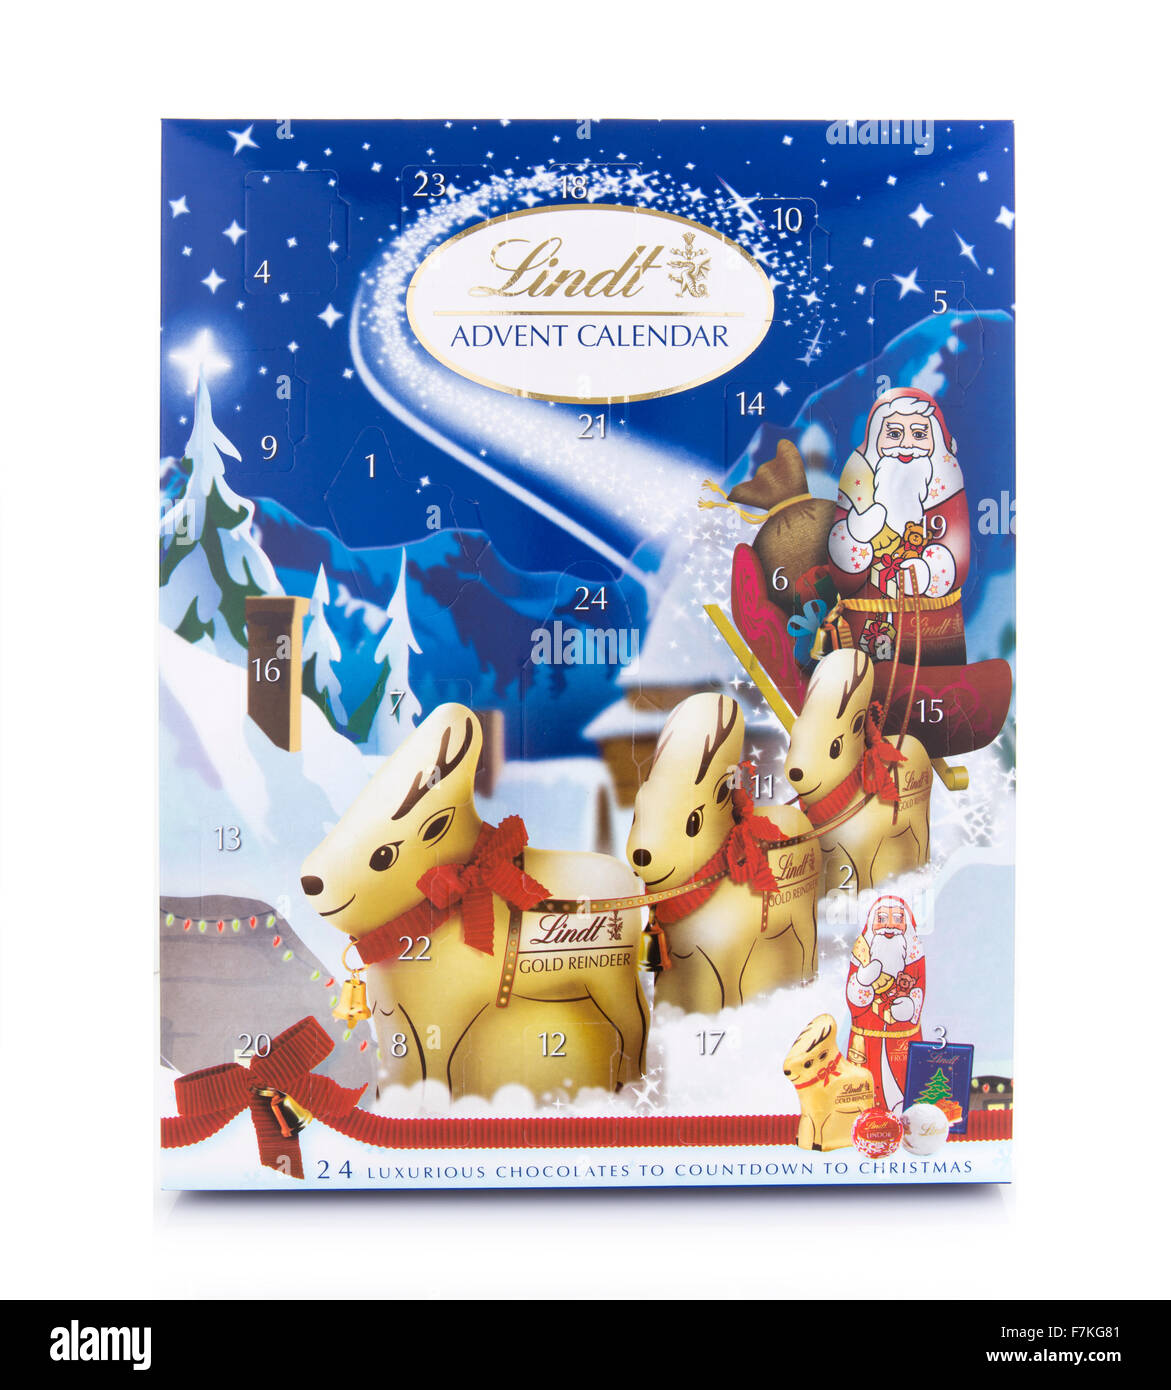 Lindt Advent Calendar on a White Background - Stock Image